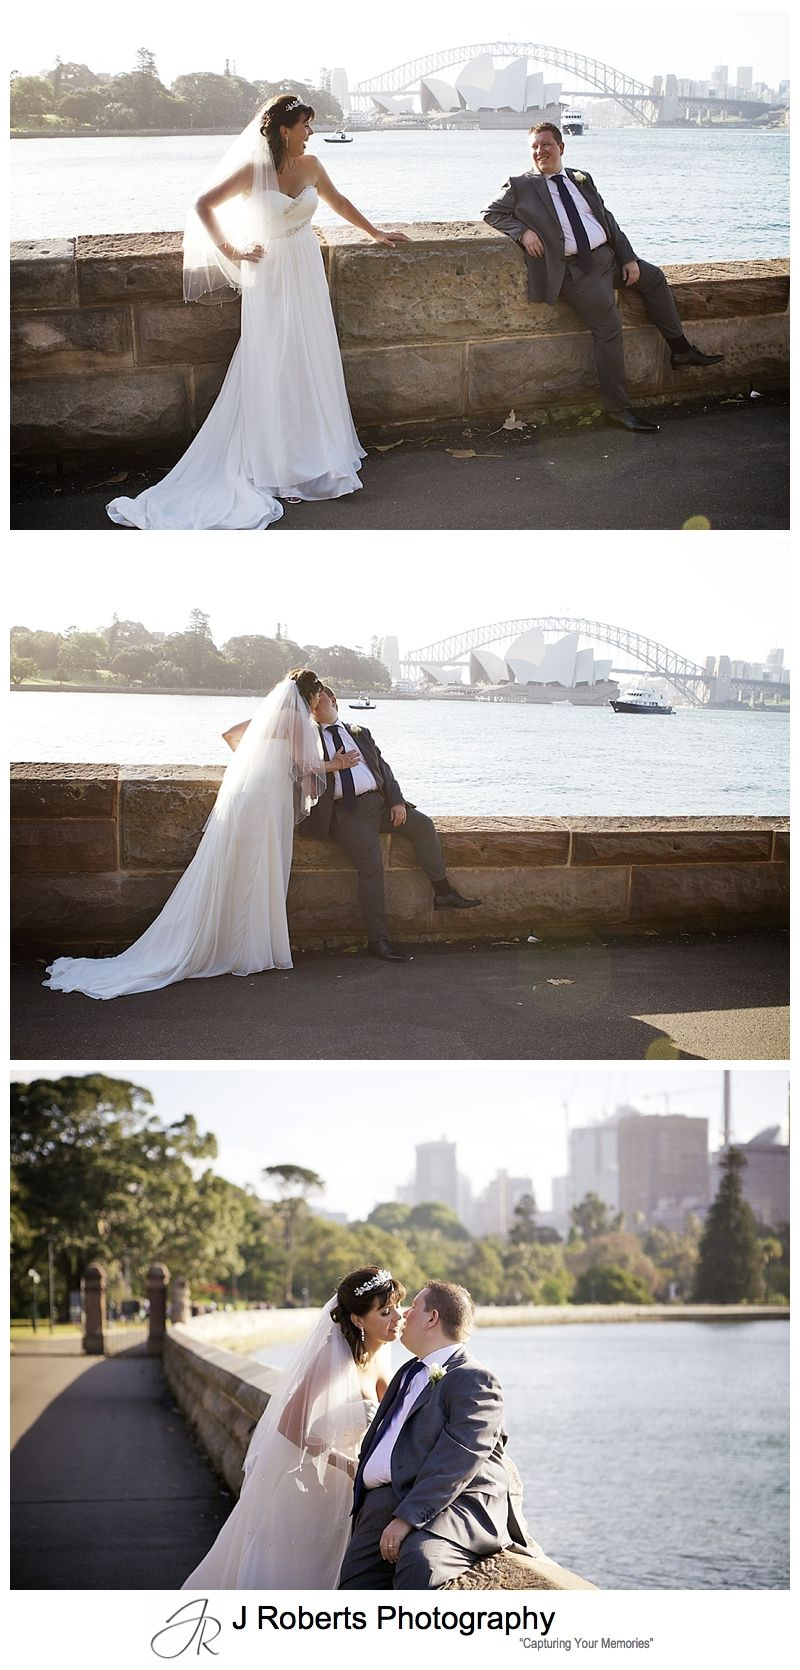 Bride and groom farm cove sydney - sydney wedding photography